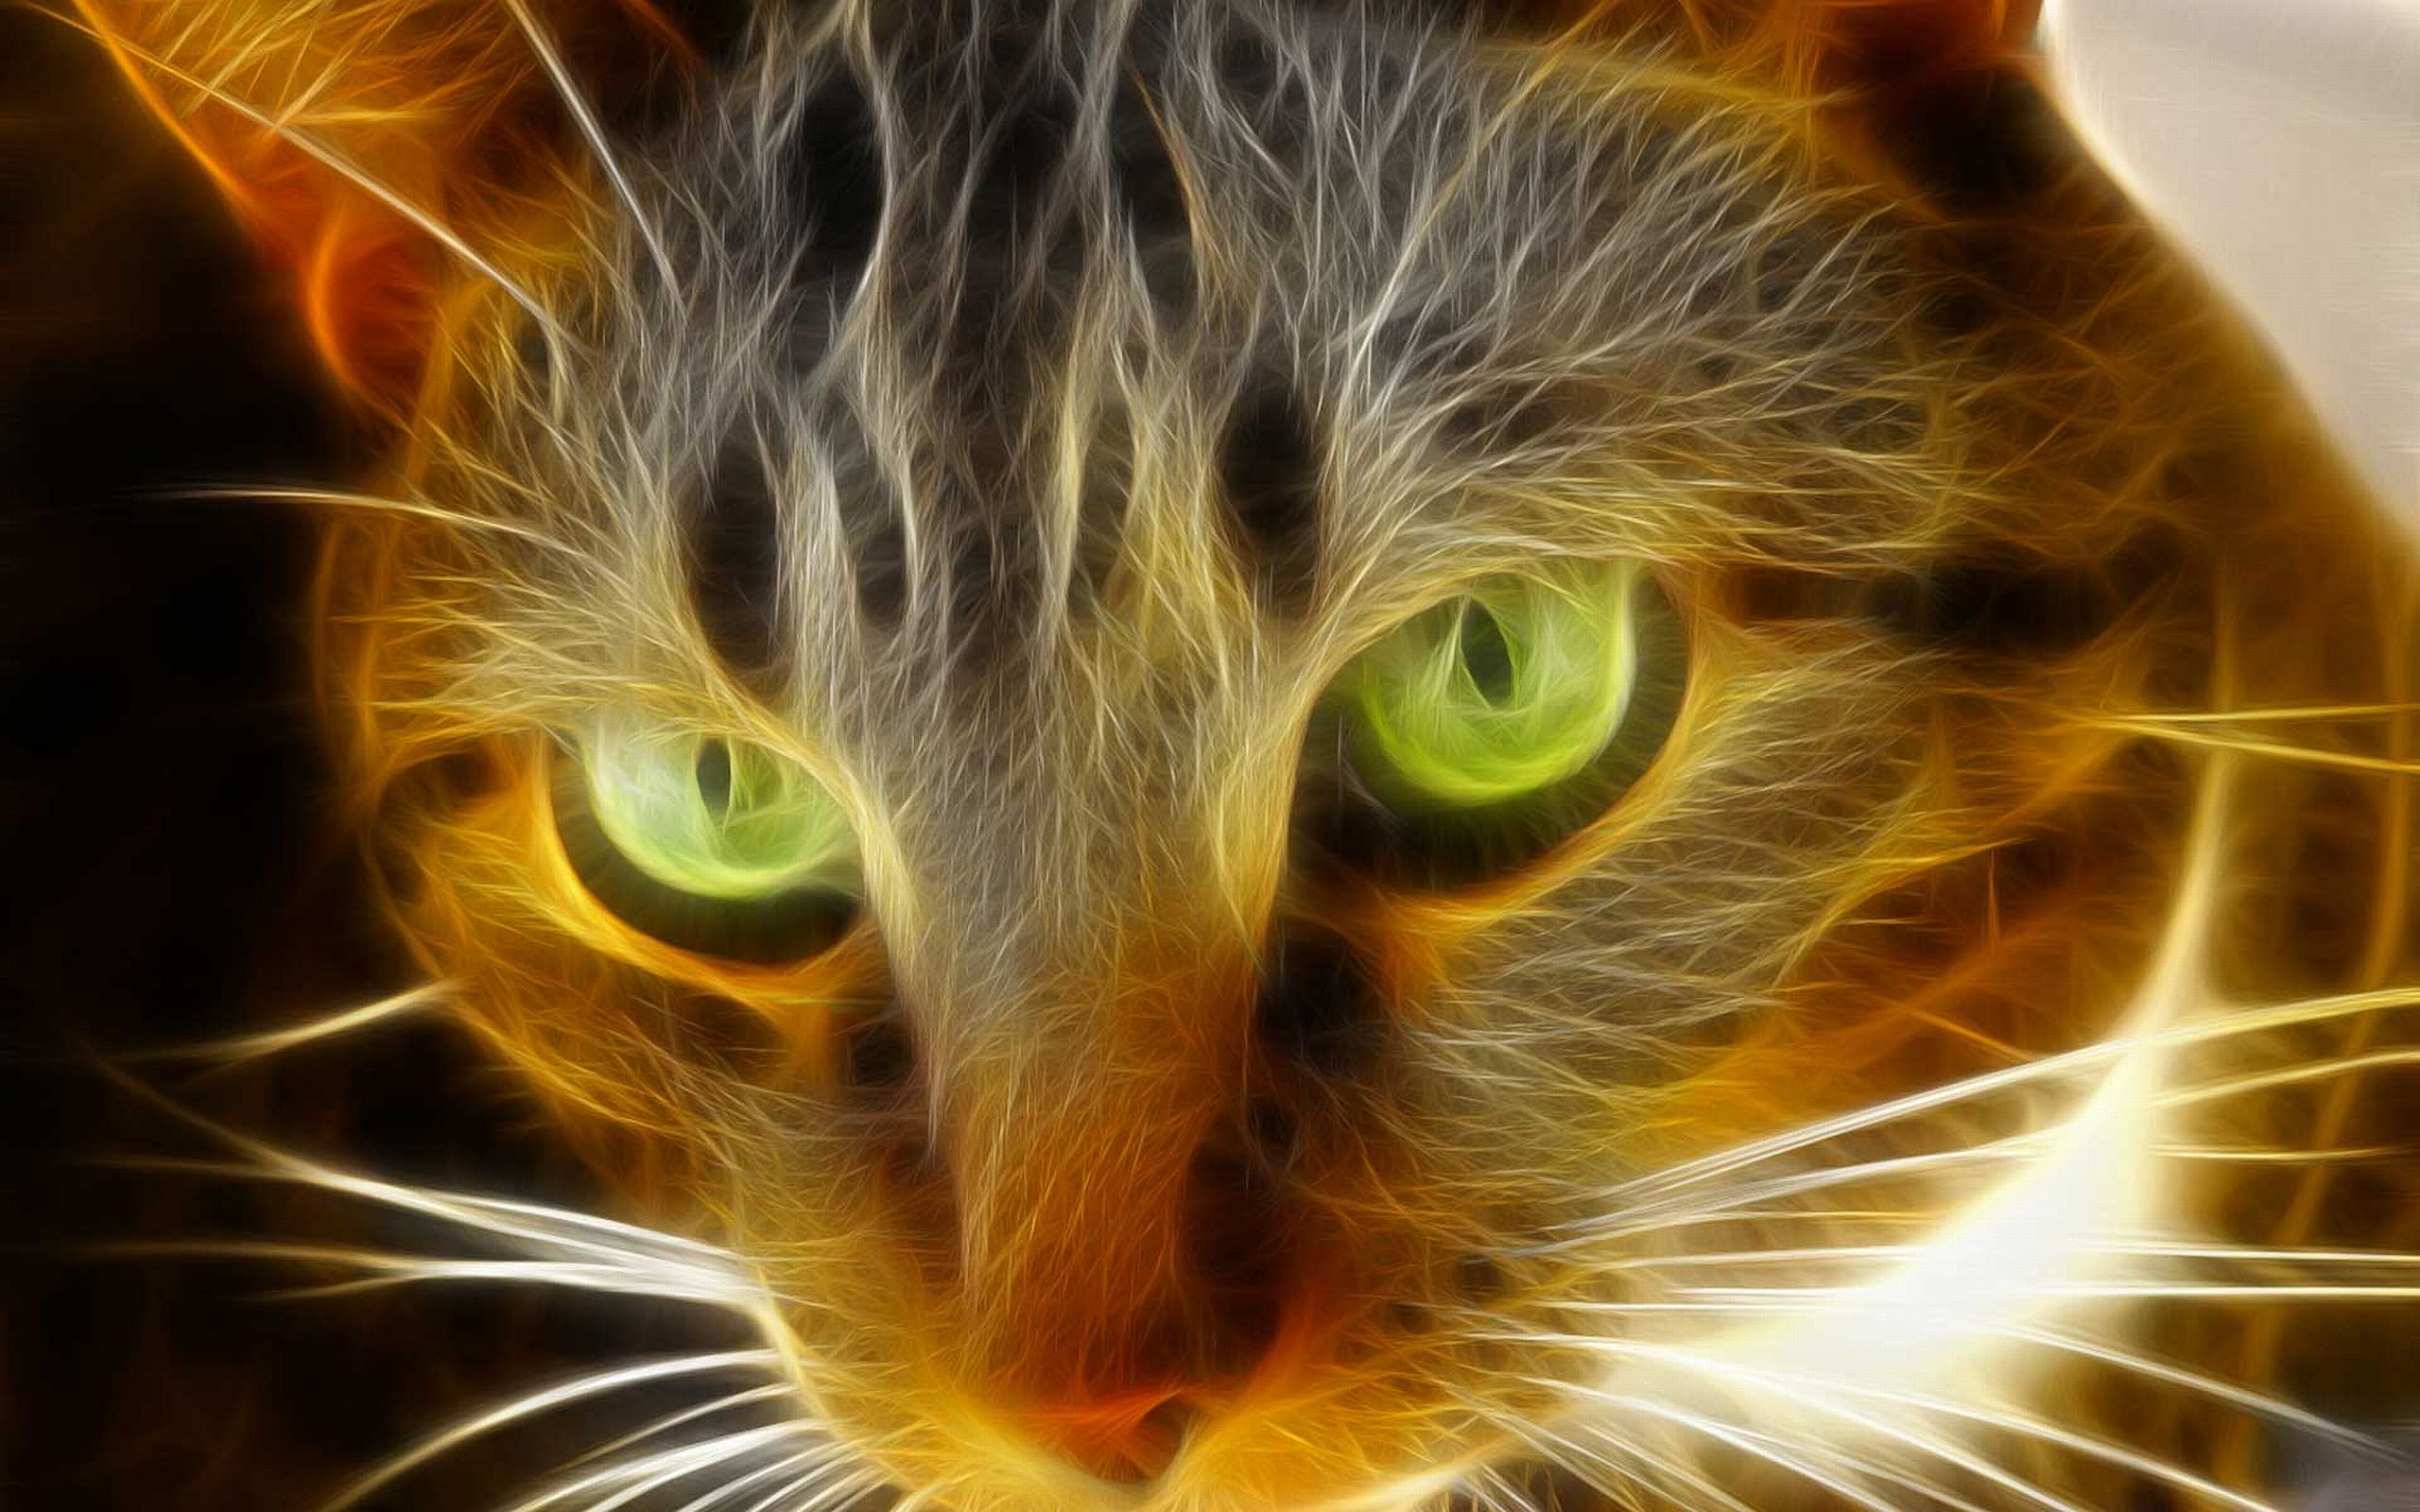 Green eyes full hd wallpaper and background image - Cool backgrounds of cats ...